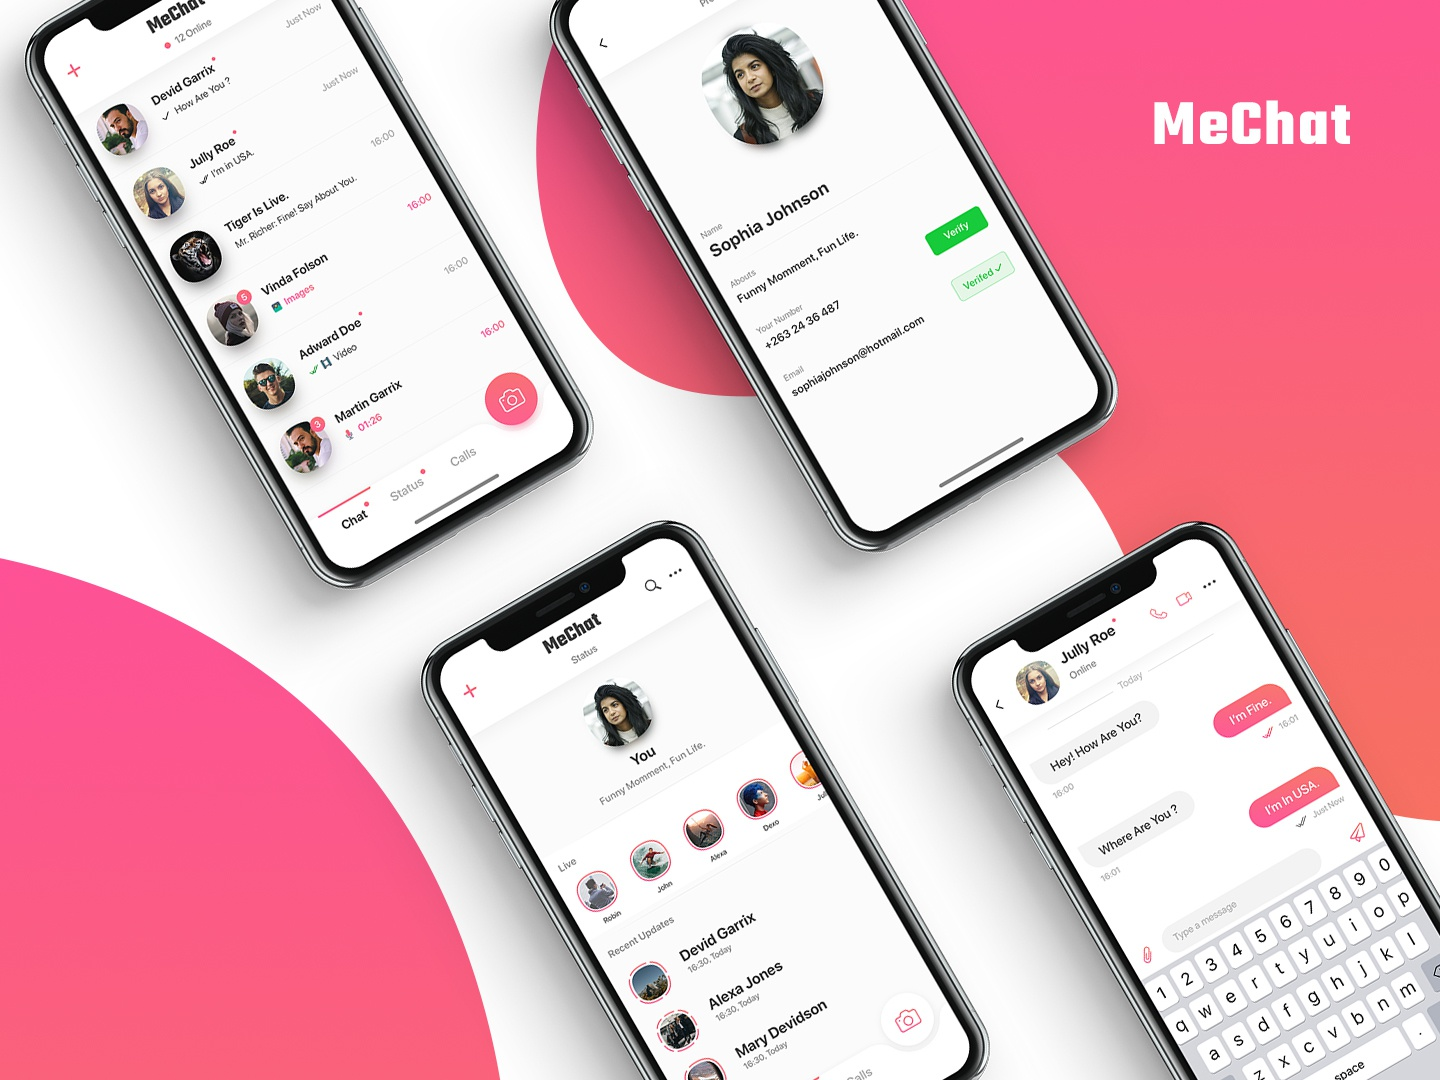 Mechat Chatting App by Olivia Graphics on Dribbble